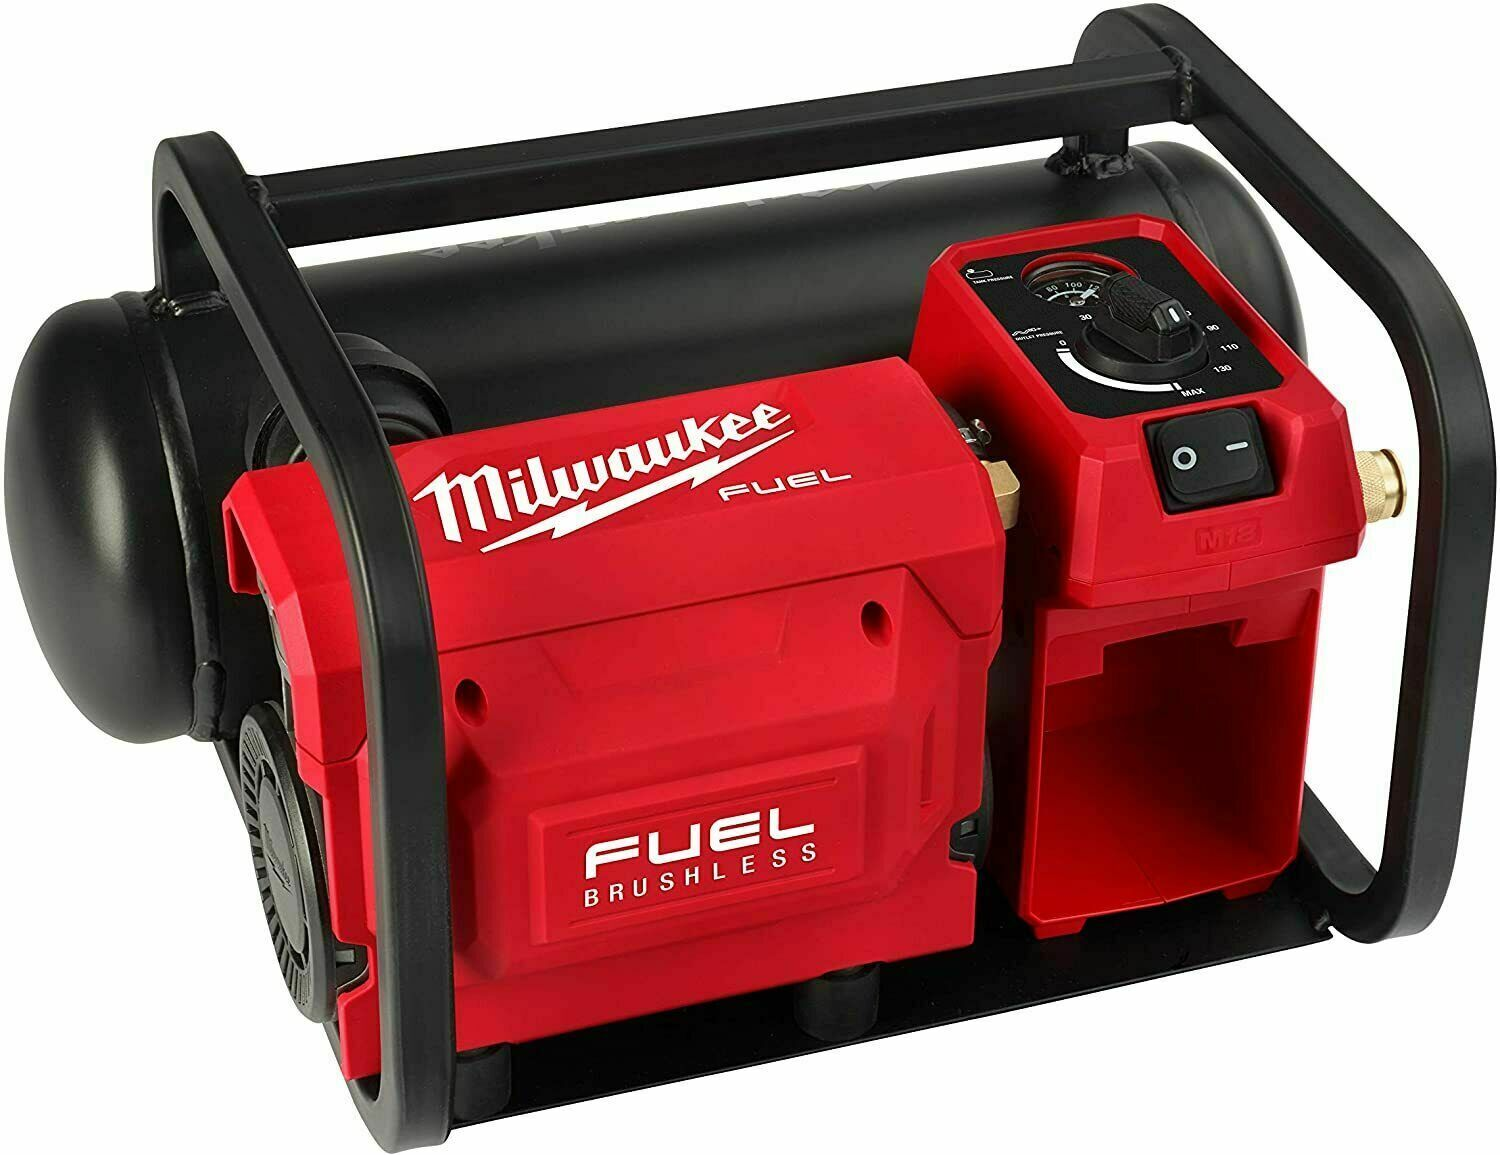 Milwaukee 2840-20 M18 FUEL 18V Brushless Cordless 2 Gal Compact Quiet Compressor. Buy it now for 329.99